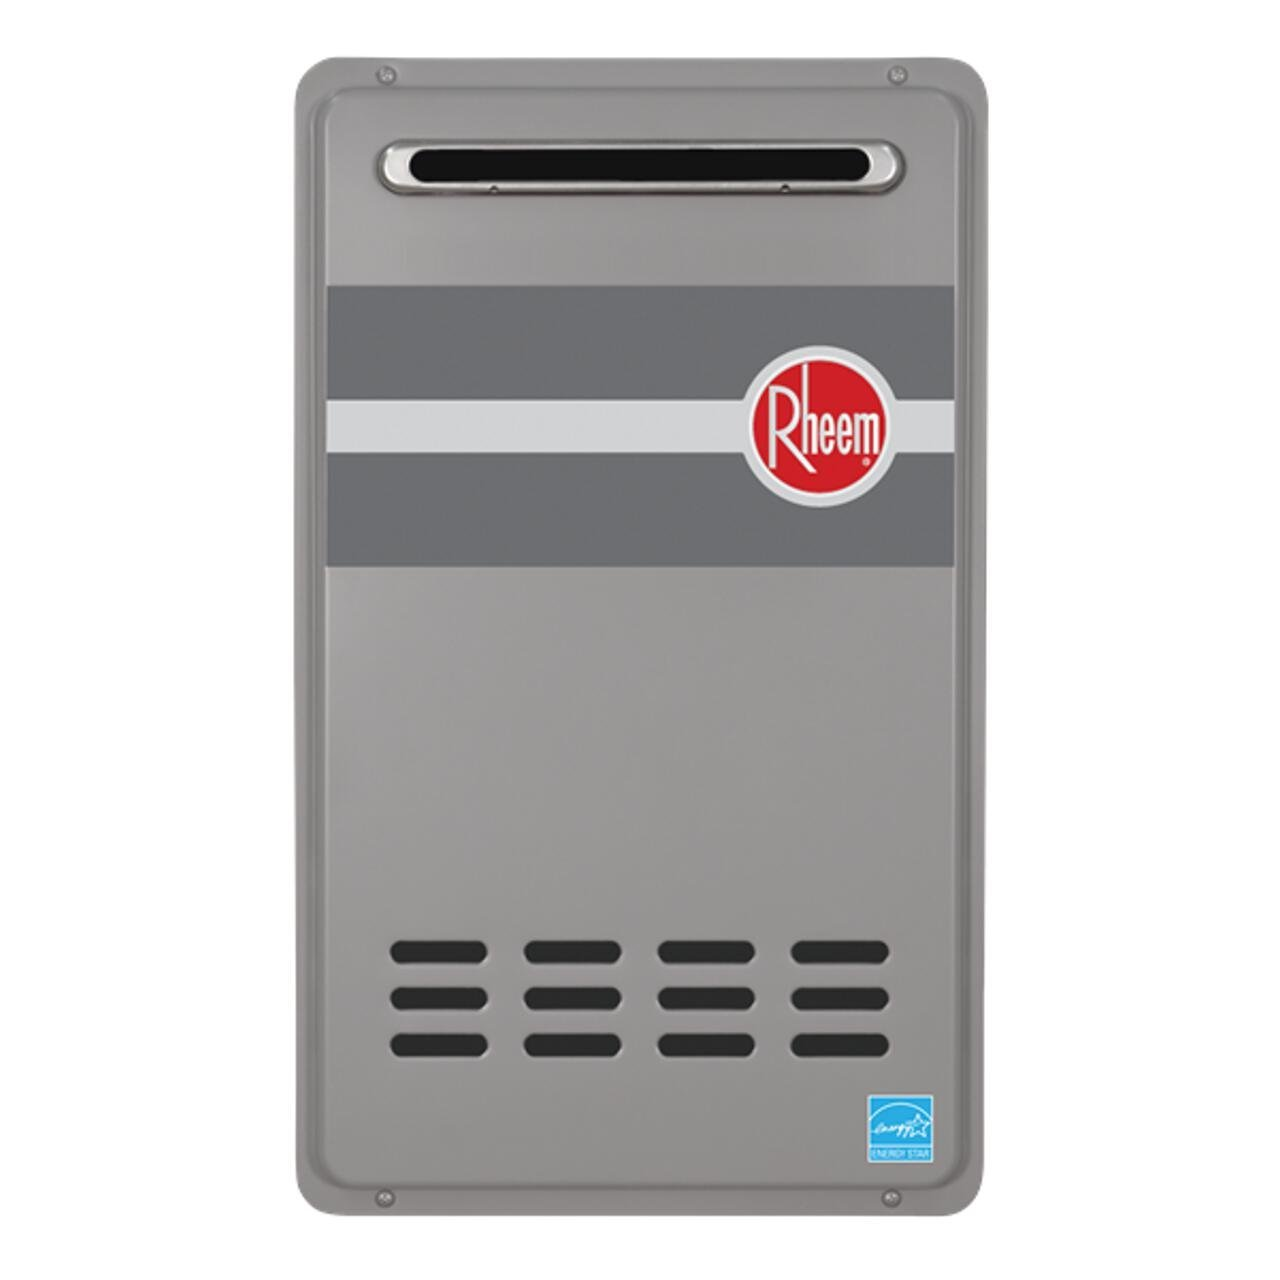 Rheem RTG-84XLN Natural Gas Water Heater